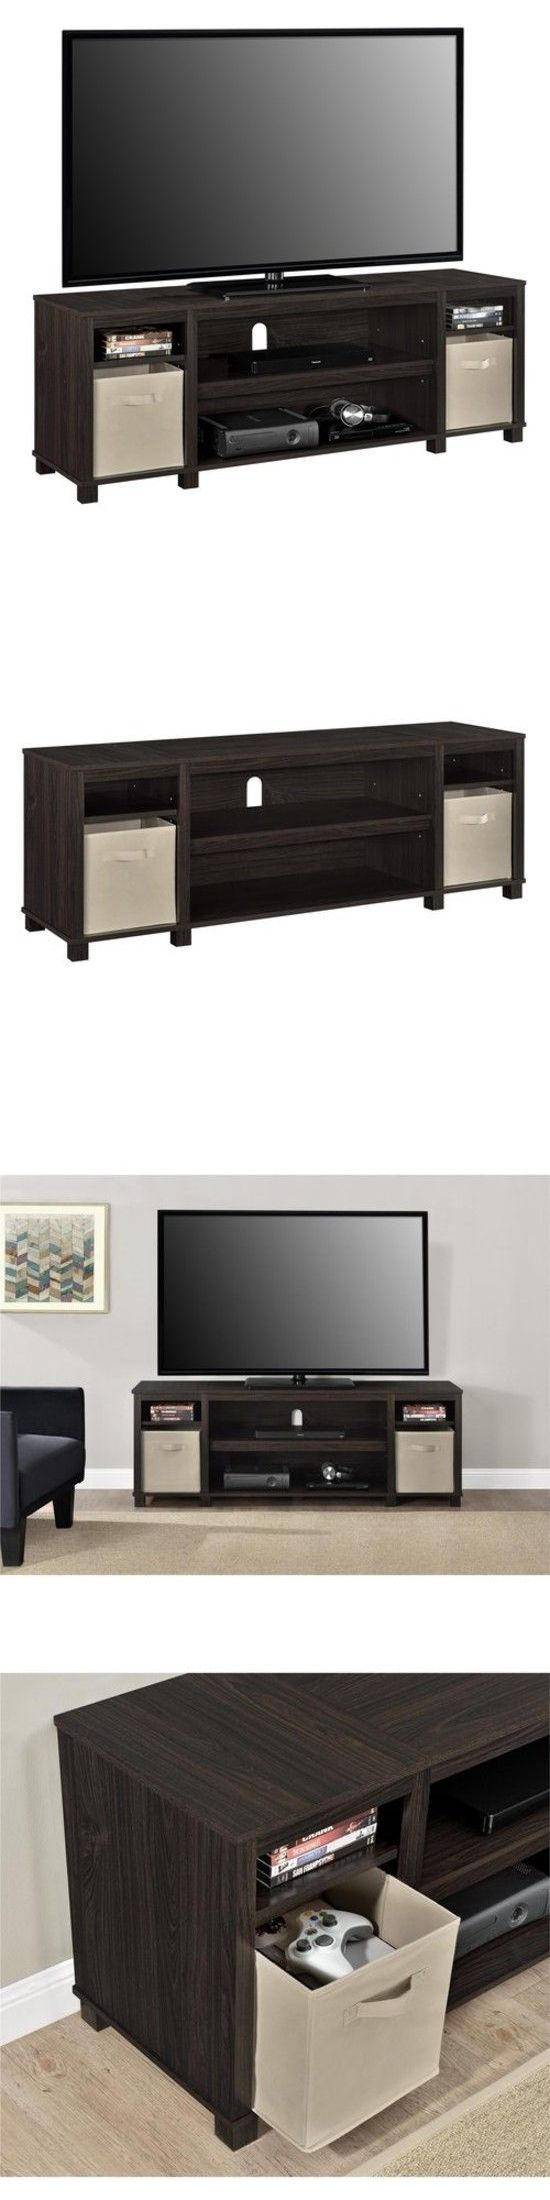 best 25 65 inch tv stand ideas on pinterest 65 tv stand 65 inch tvs and walmart tv prices. Black Bedroom Furniture Sets. Home Design Ideas